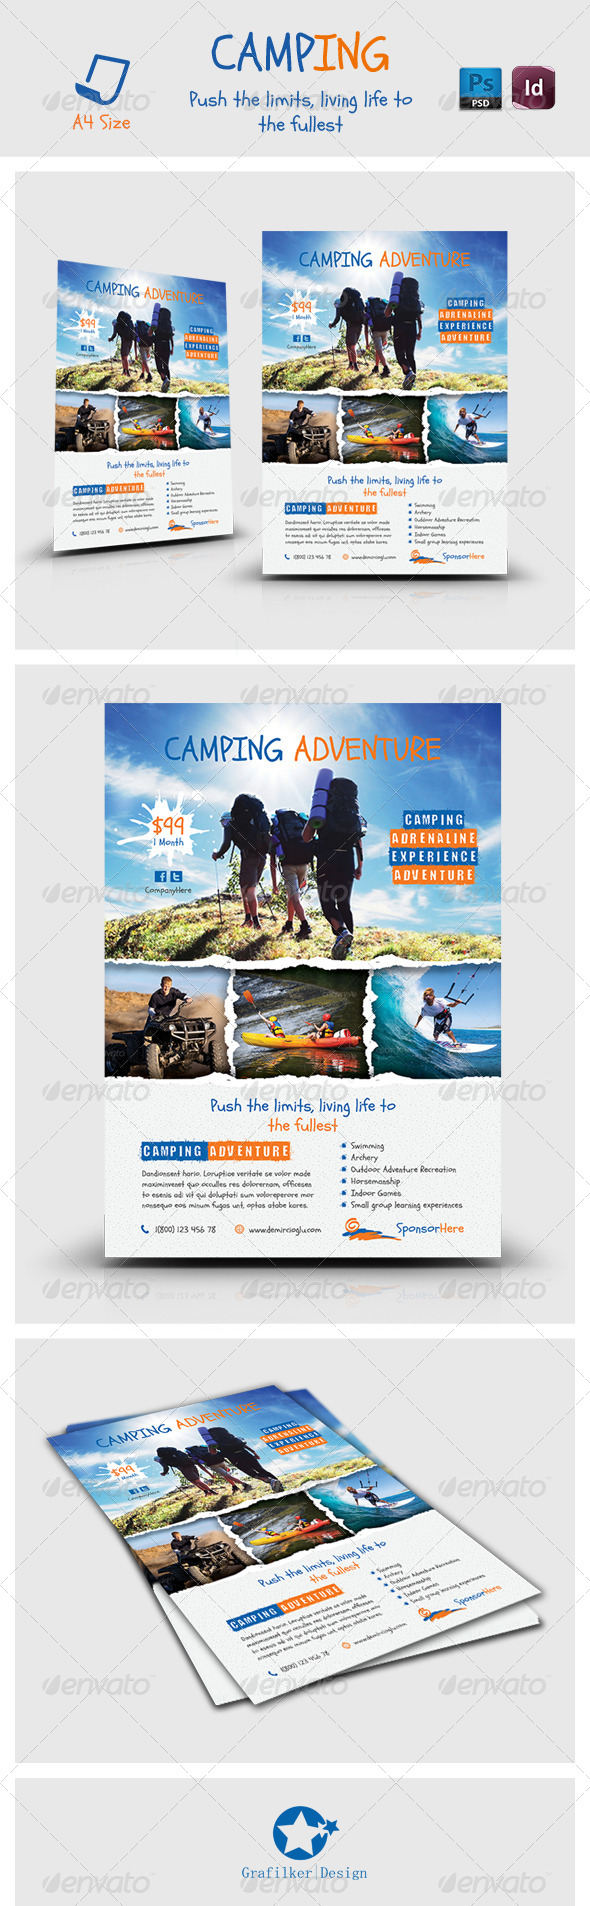 Camping Adventure Flyer Templates